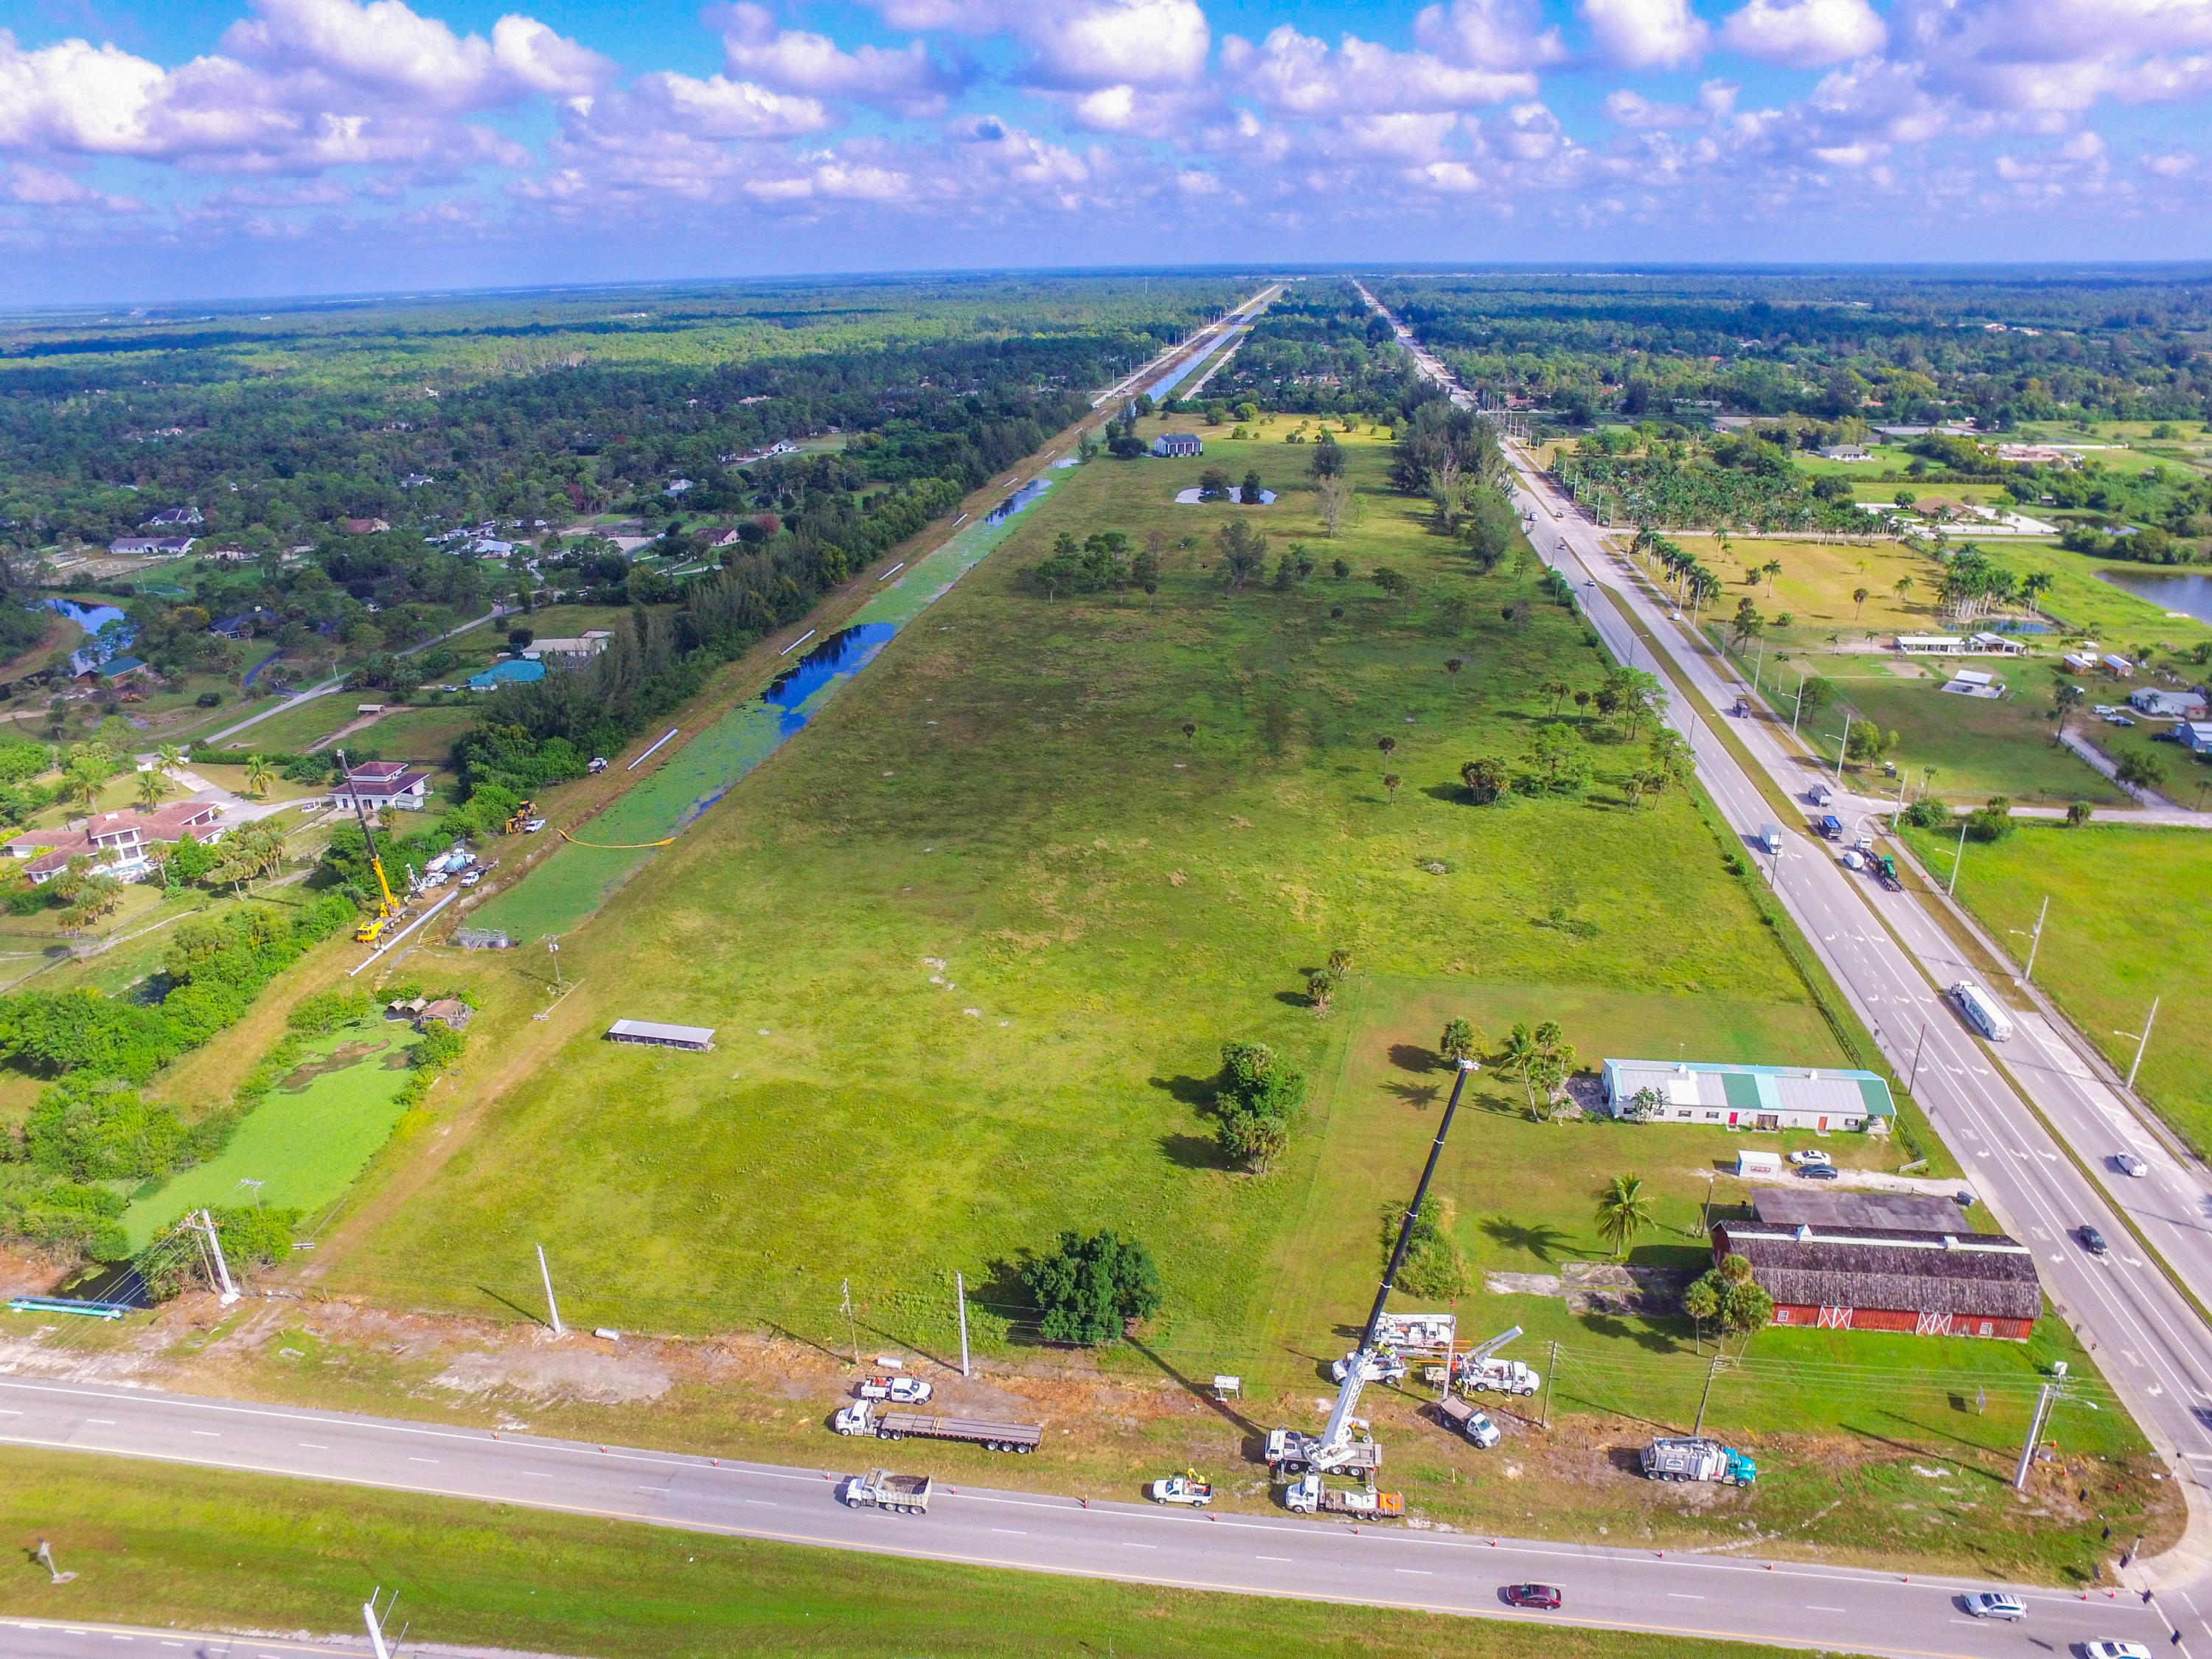 Land for sale Loxahatchee, Florida 35 Seminole Pratt Whitney Road